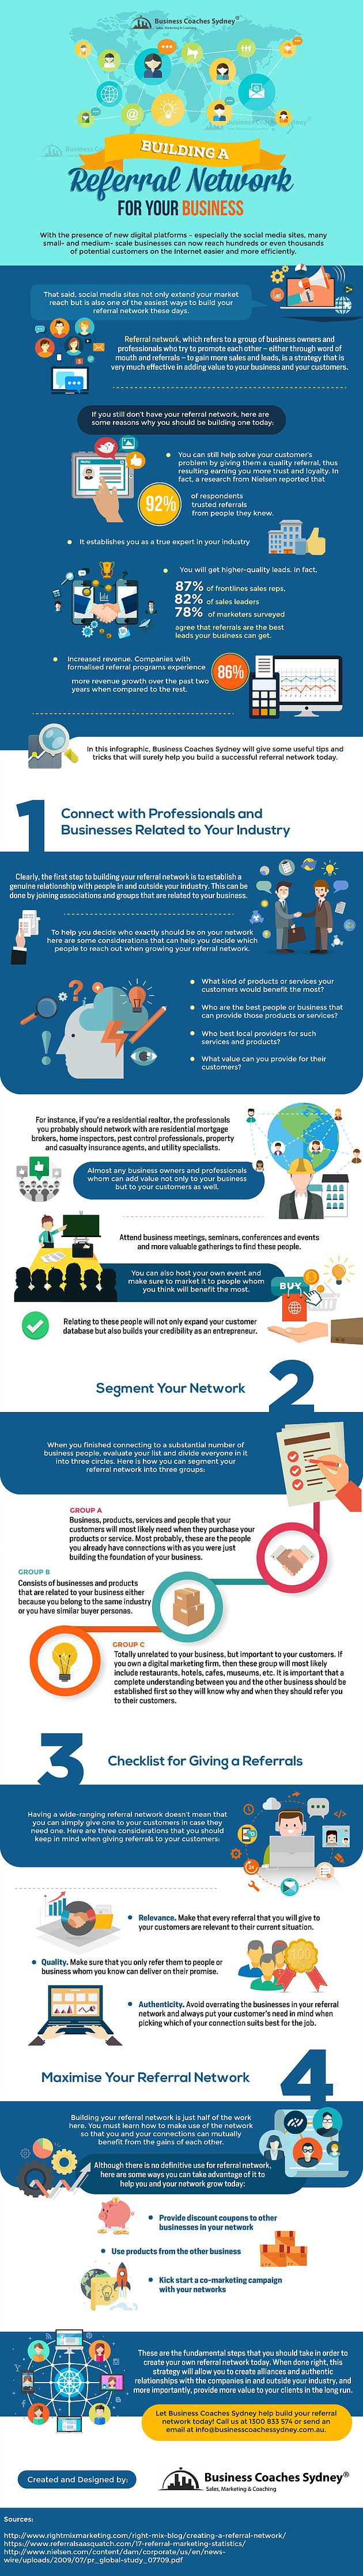 Building-A-Referral-Network-For-Your-Business